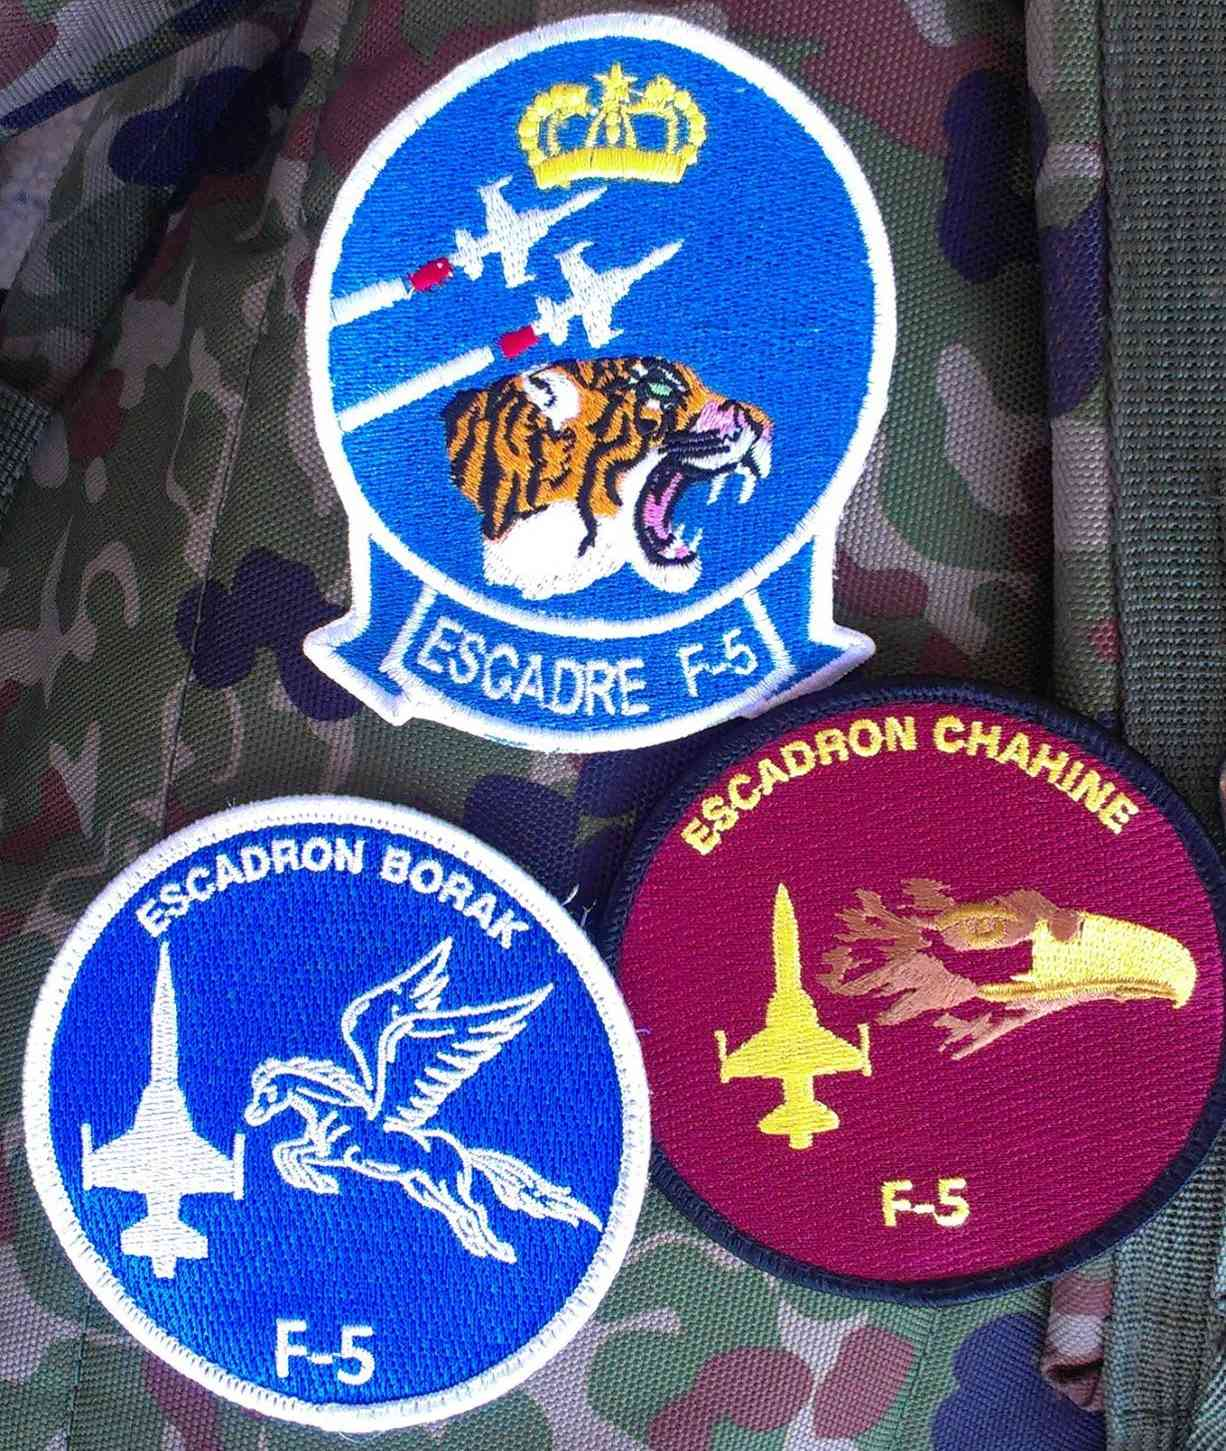 RMAF insignia Swirls Patches / Ecussons,cocardes et Insignes Des FRA - Page 4 Clipbo61